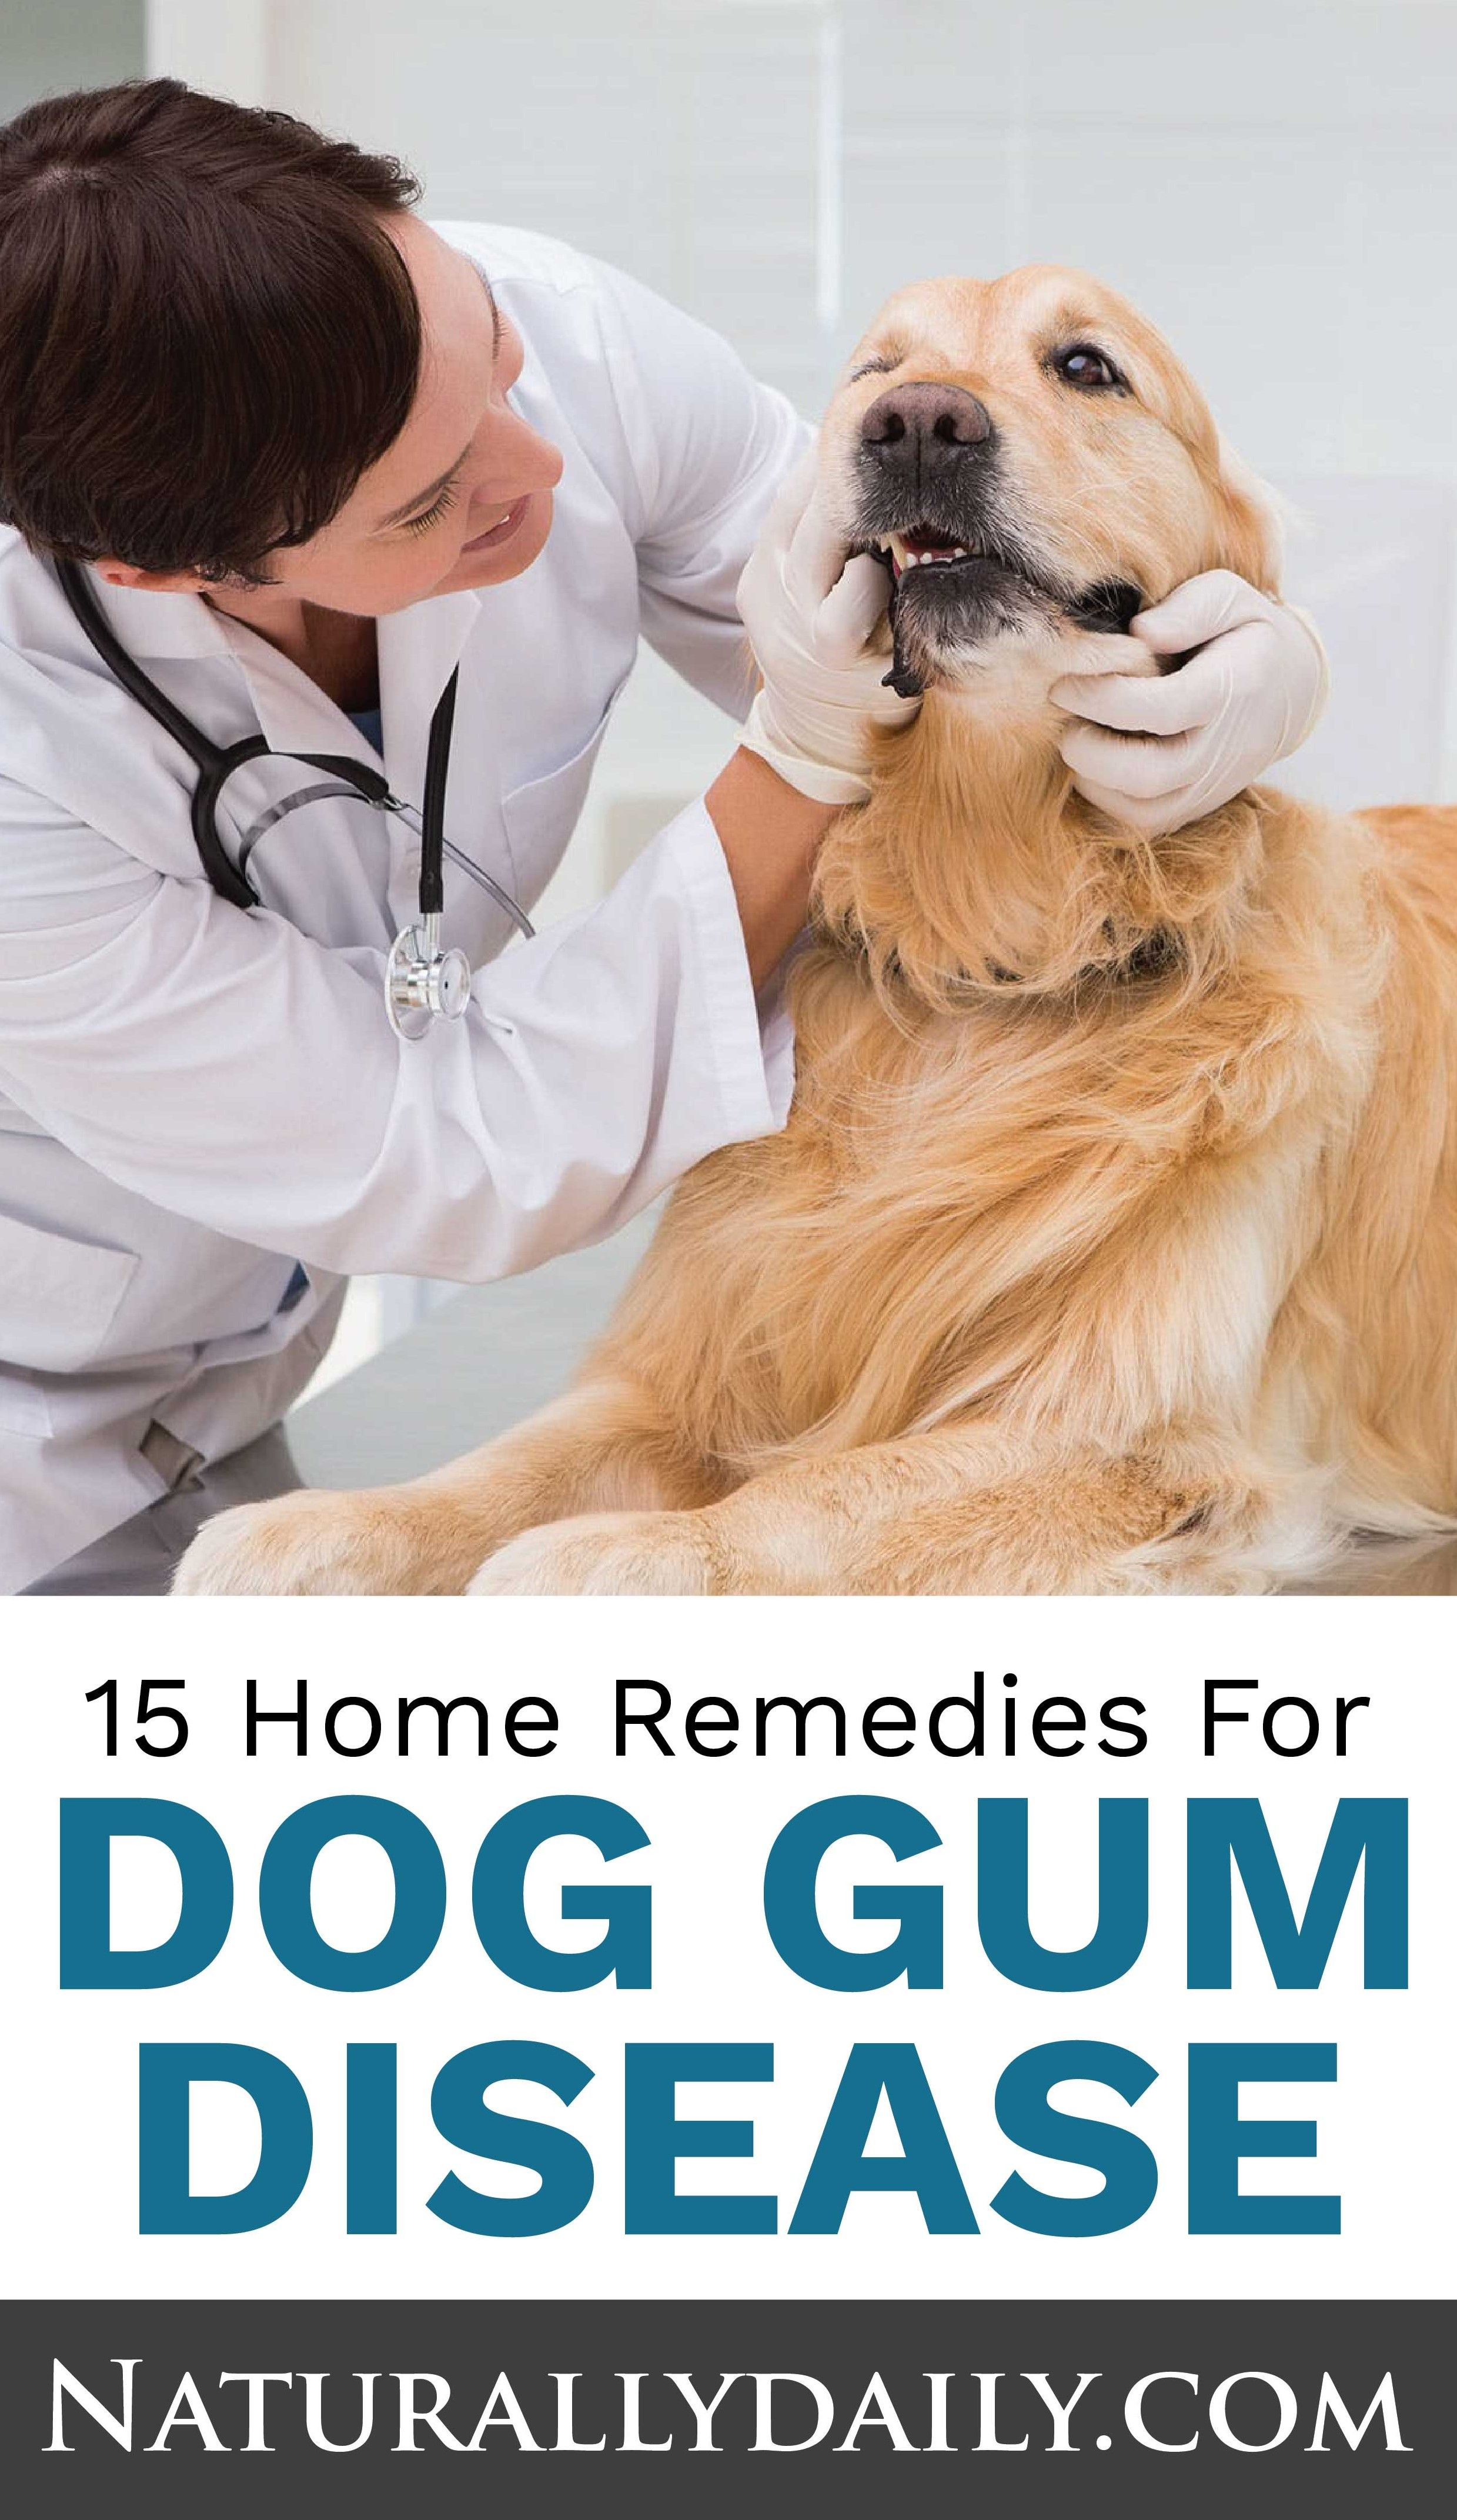 15 Home Remedies for Dog Gum Disease or Periodontitis in